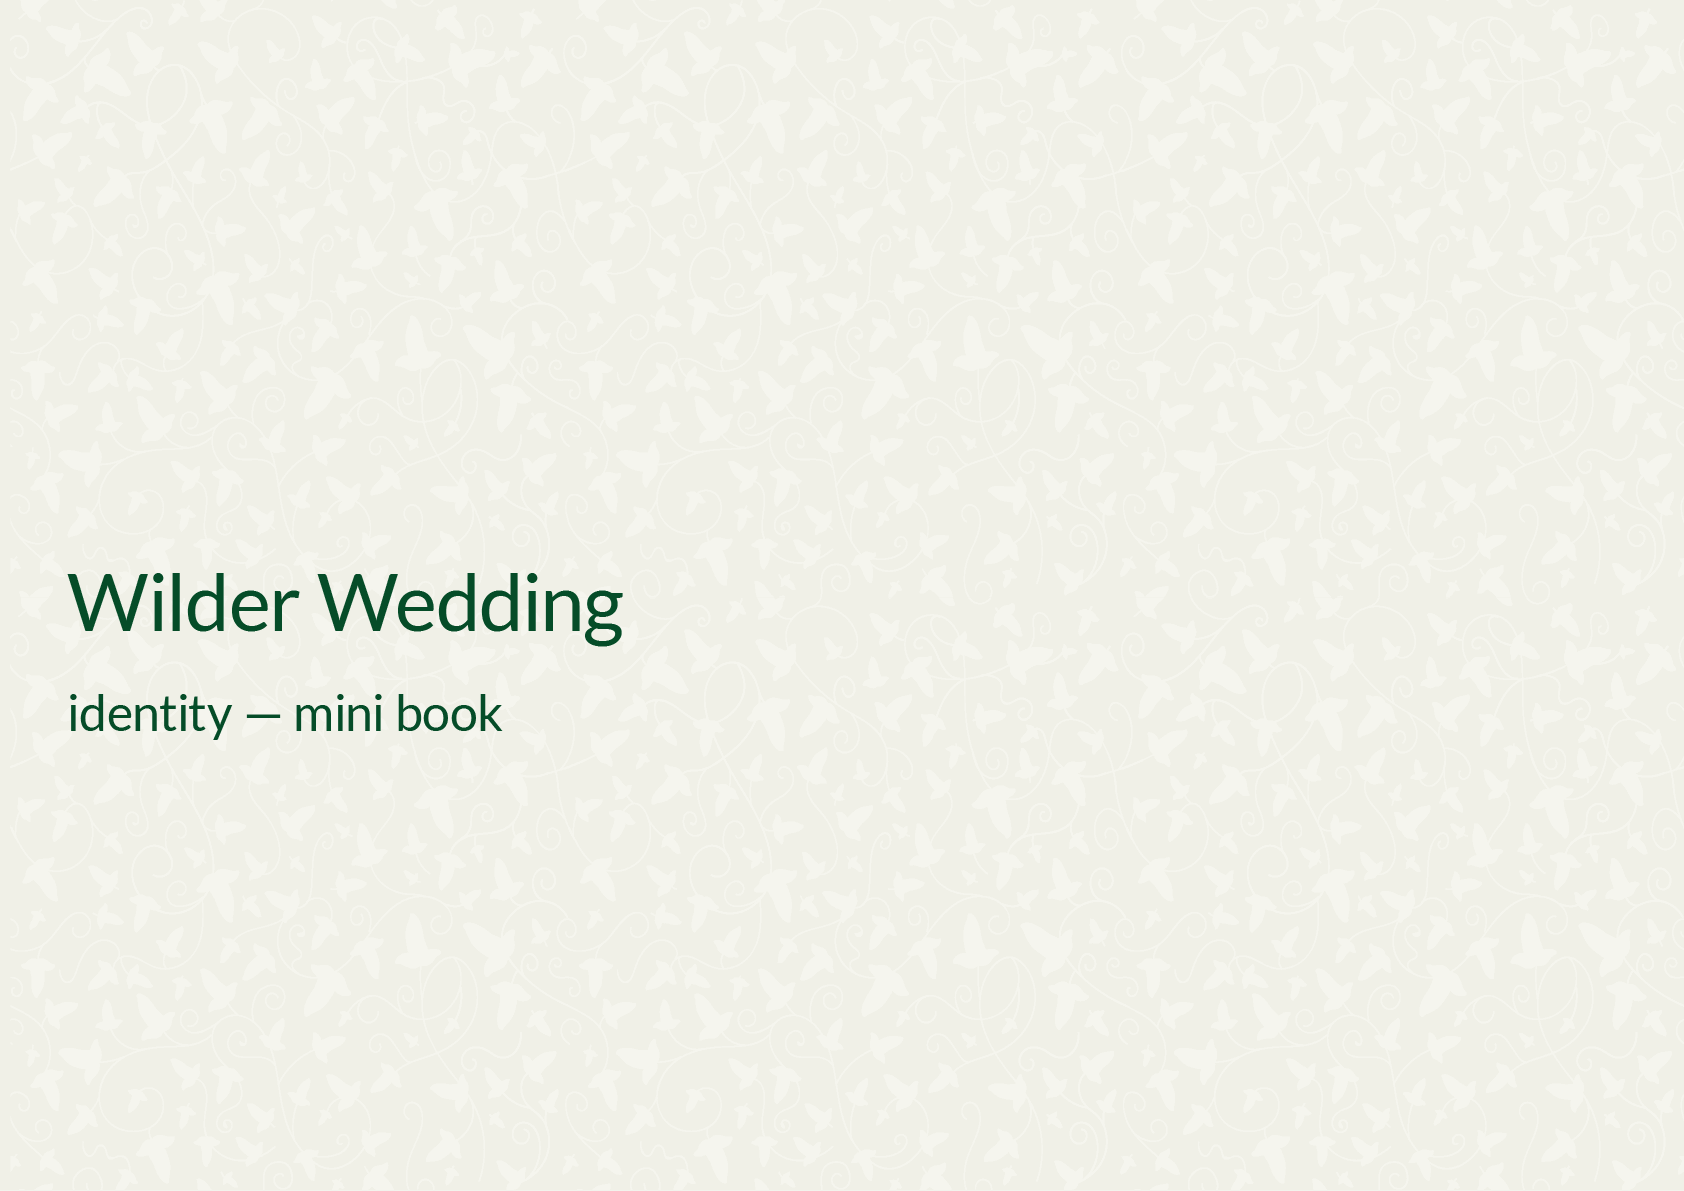 wedding-branding-title-page.png